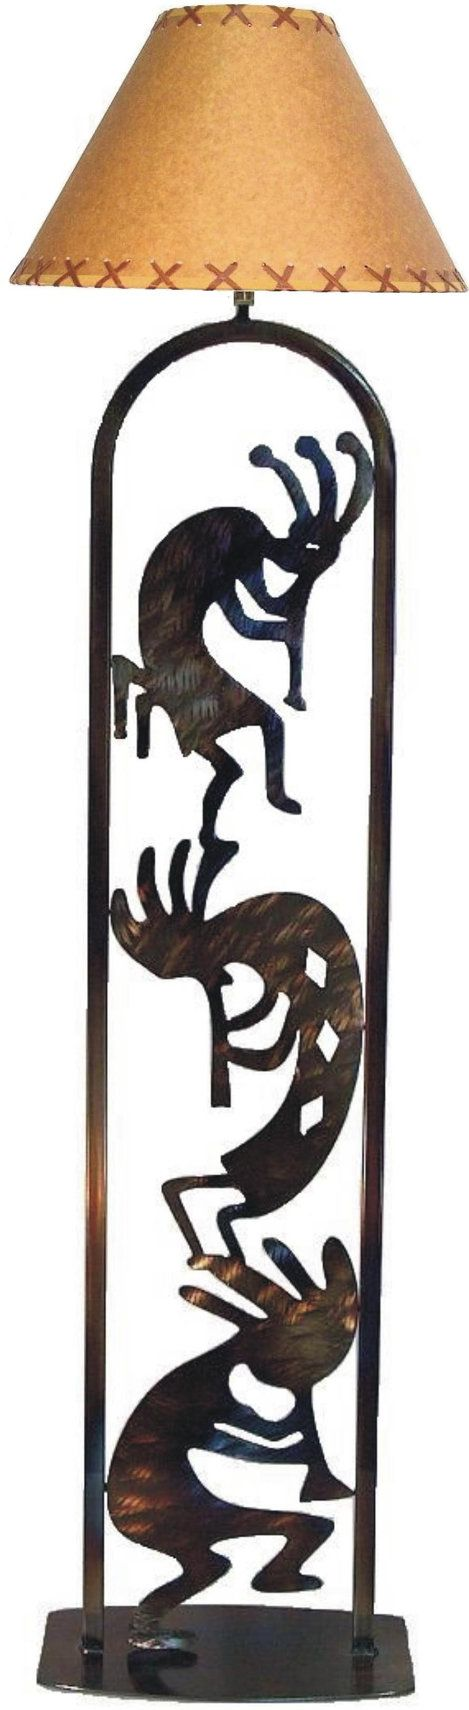 Kokopelli floor lamp dreamy for the home pinterest floor lamp kokopelli floor lamp mozeypictures